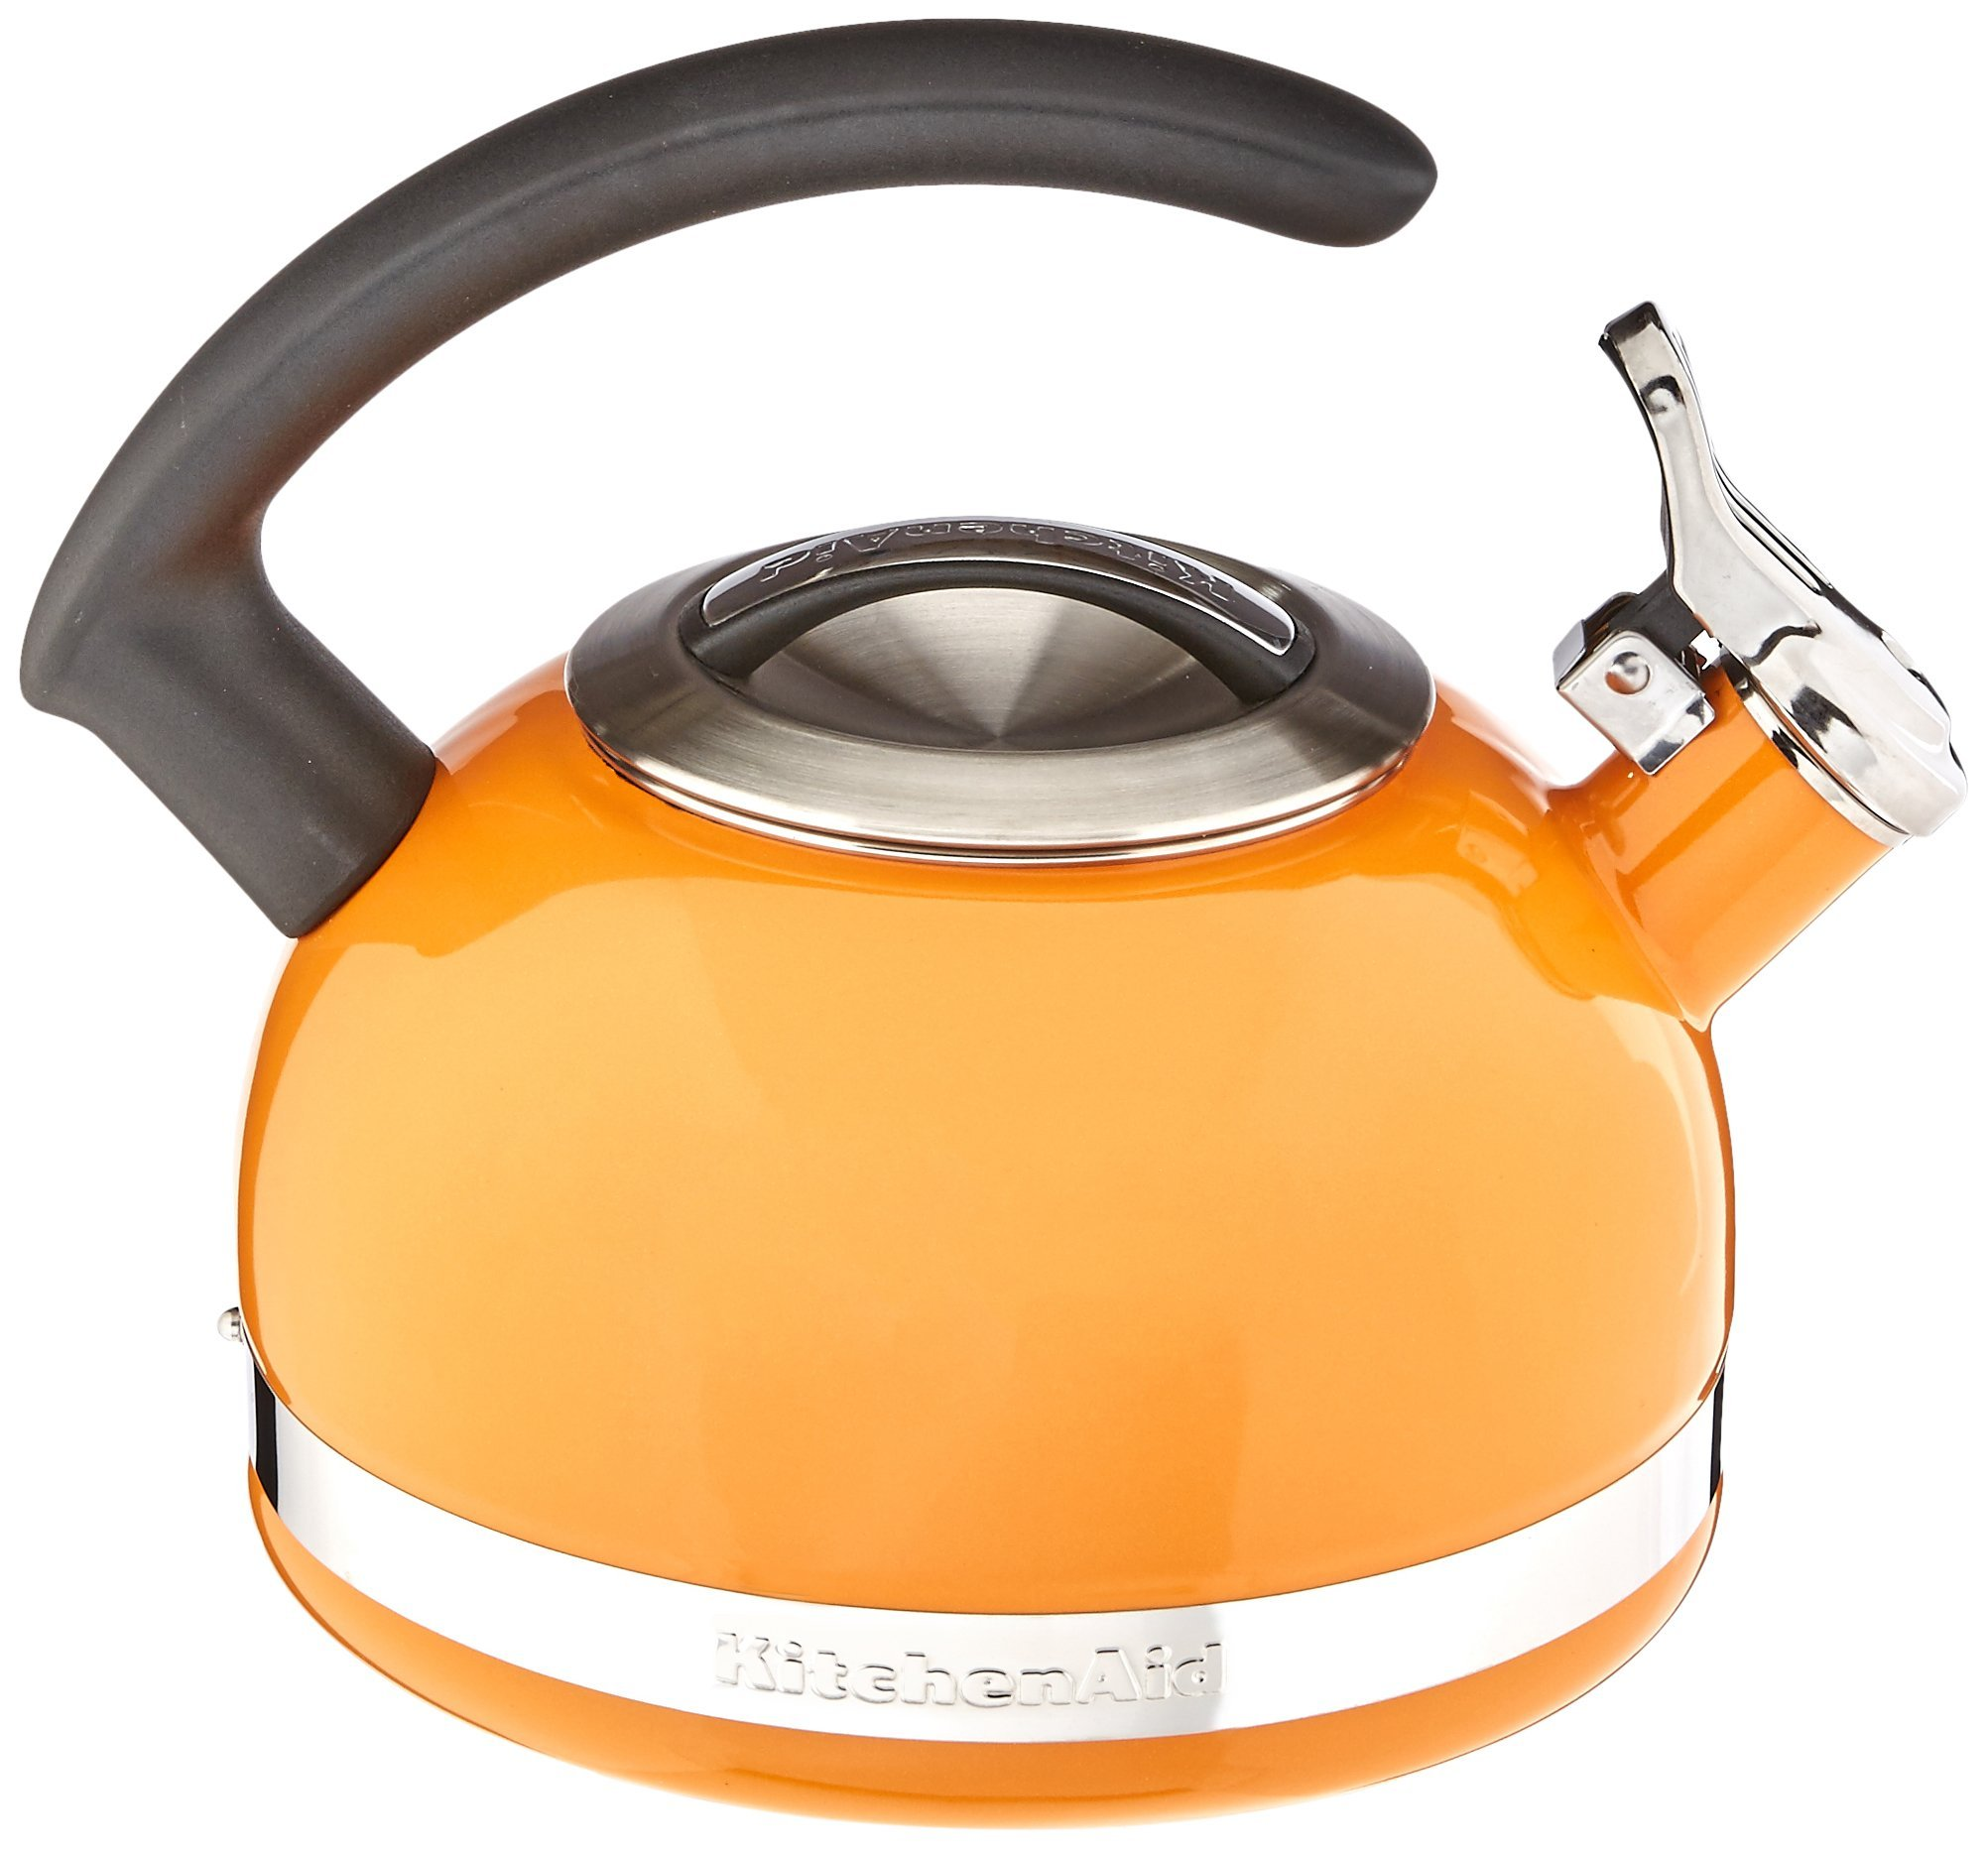 KitchenAid KTEN20CBDO 2.0-Quart Kettle with C Handle and Trim Band - Mandarin Orange